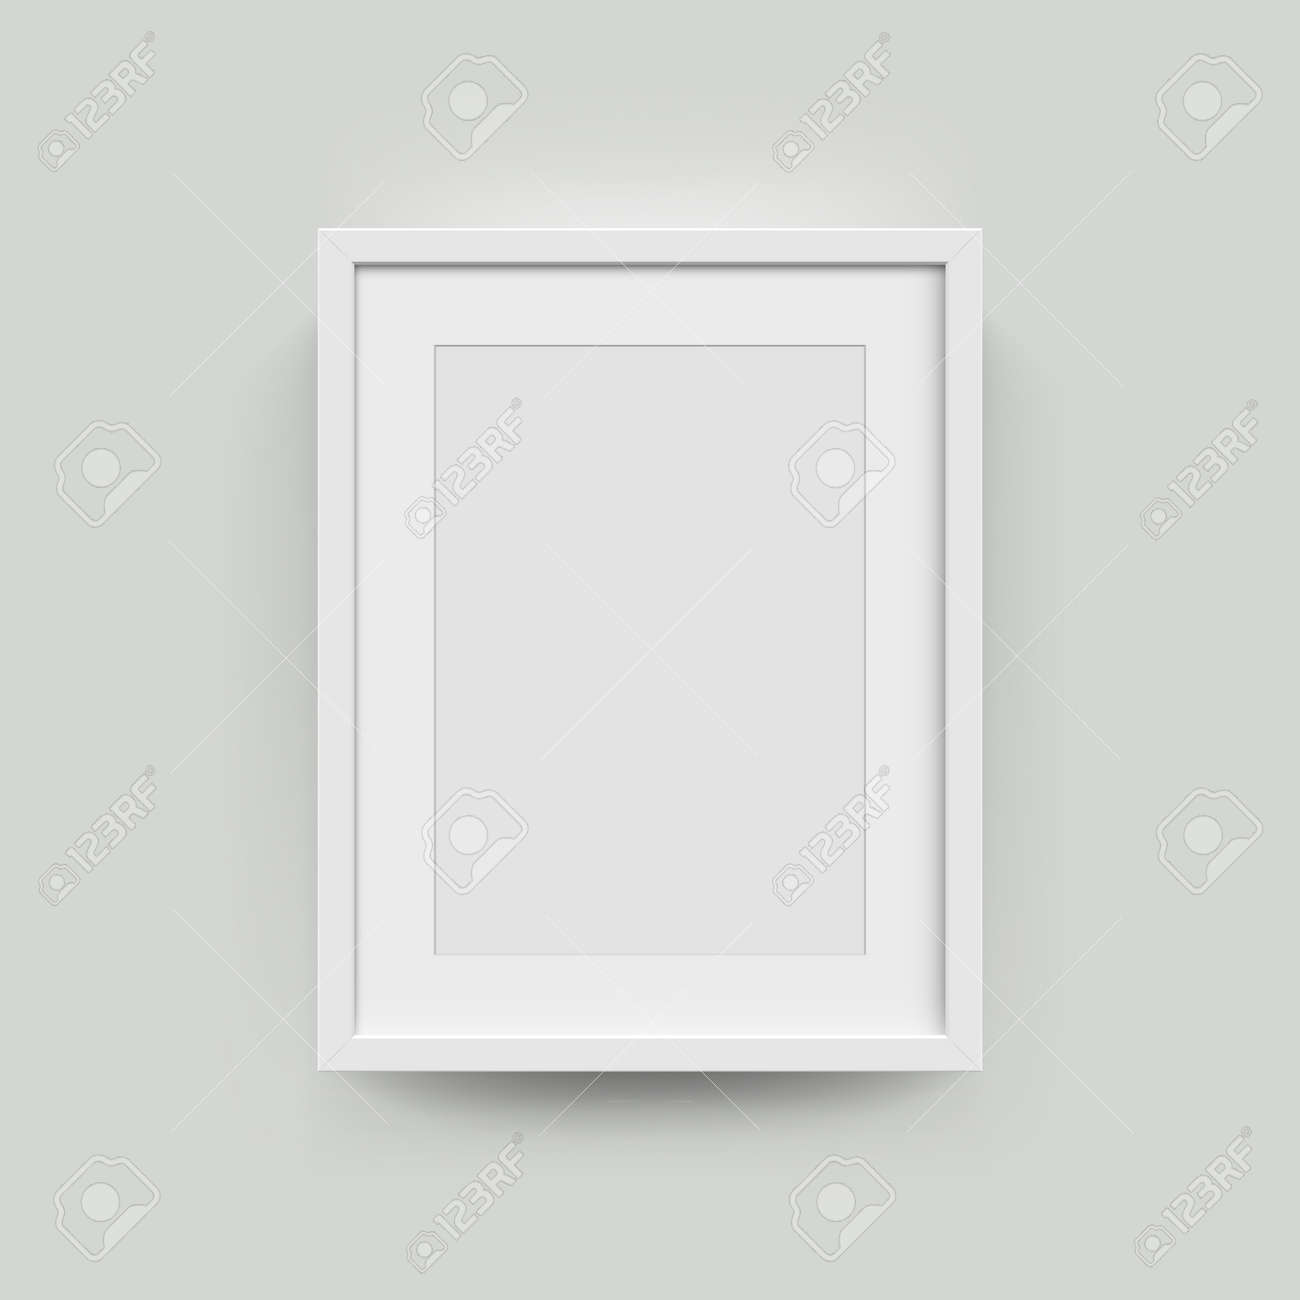 Picture Frame For Photographs. Vector Realisitc Paper Or Plastic ...